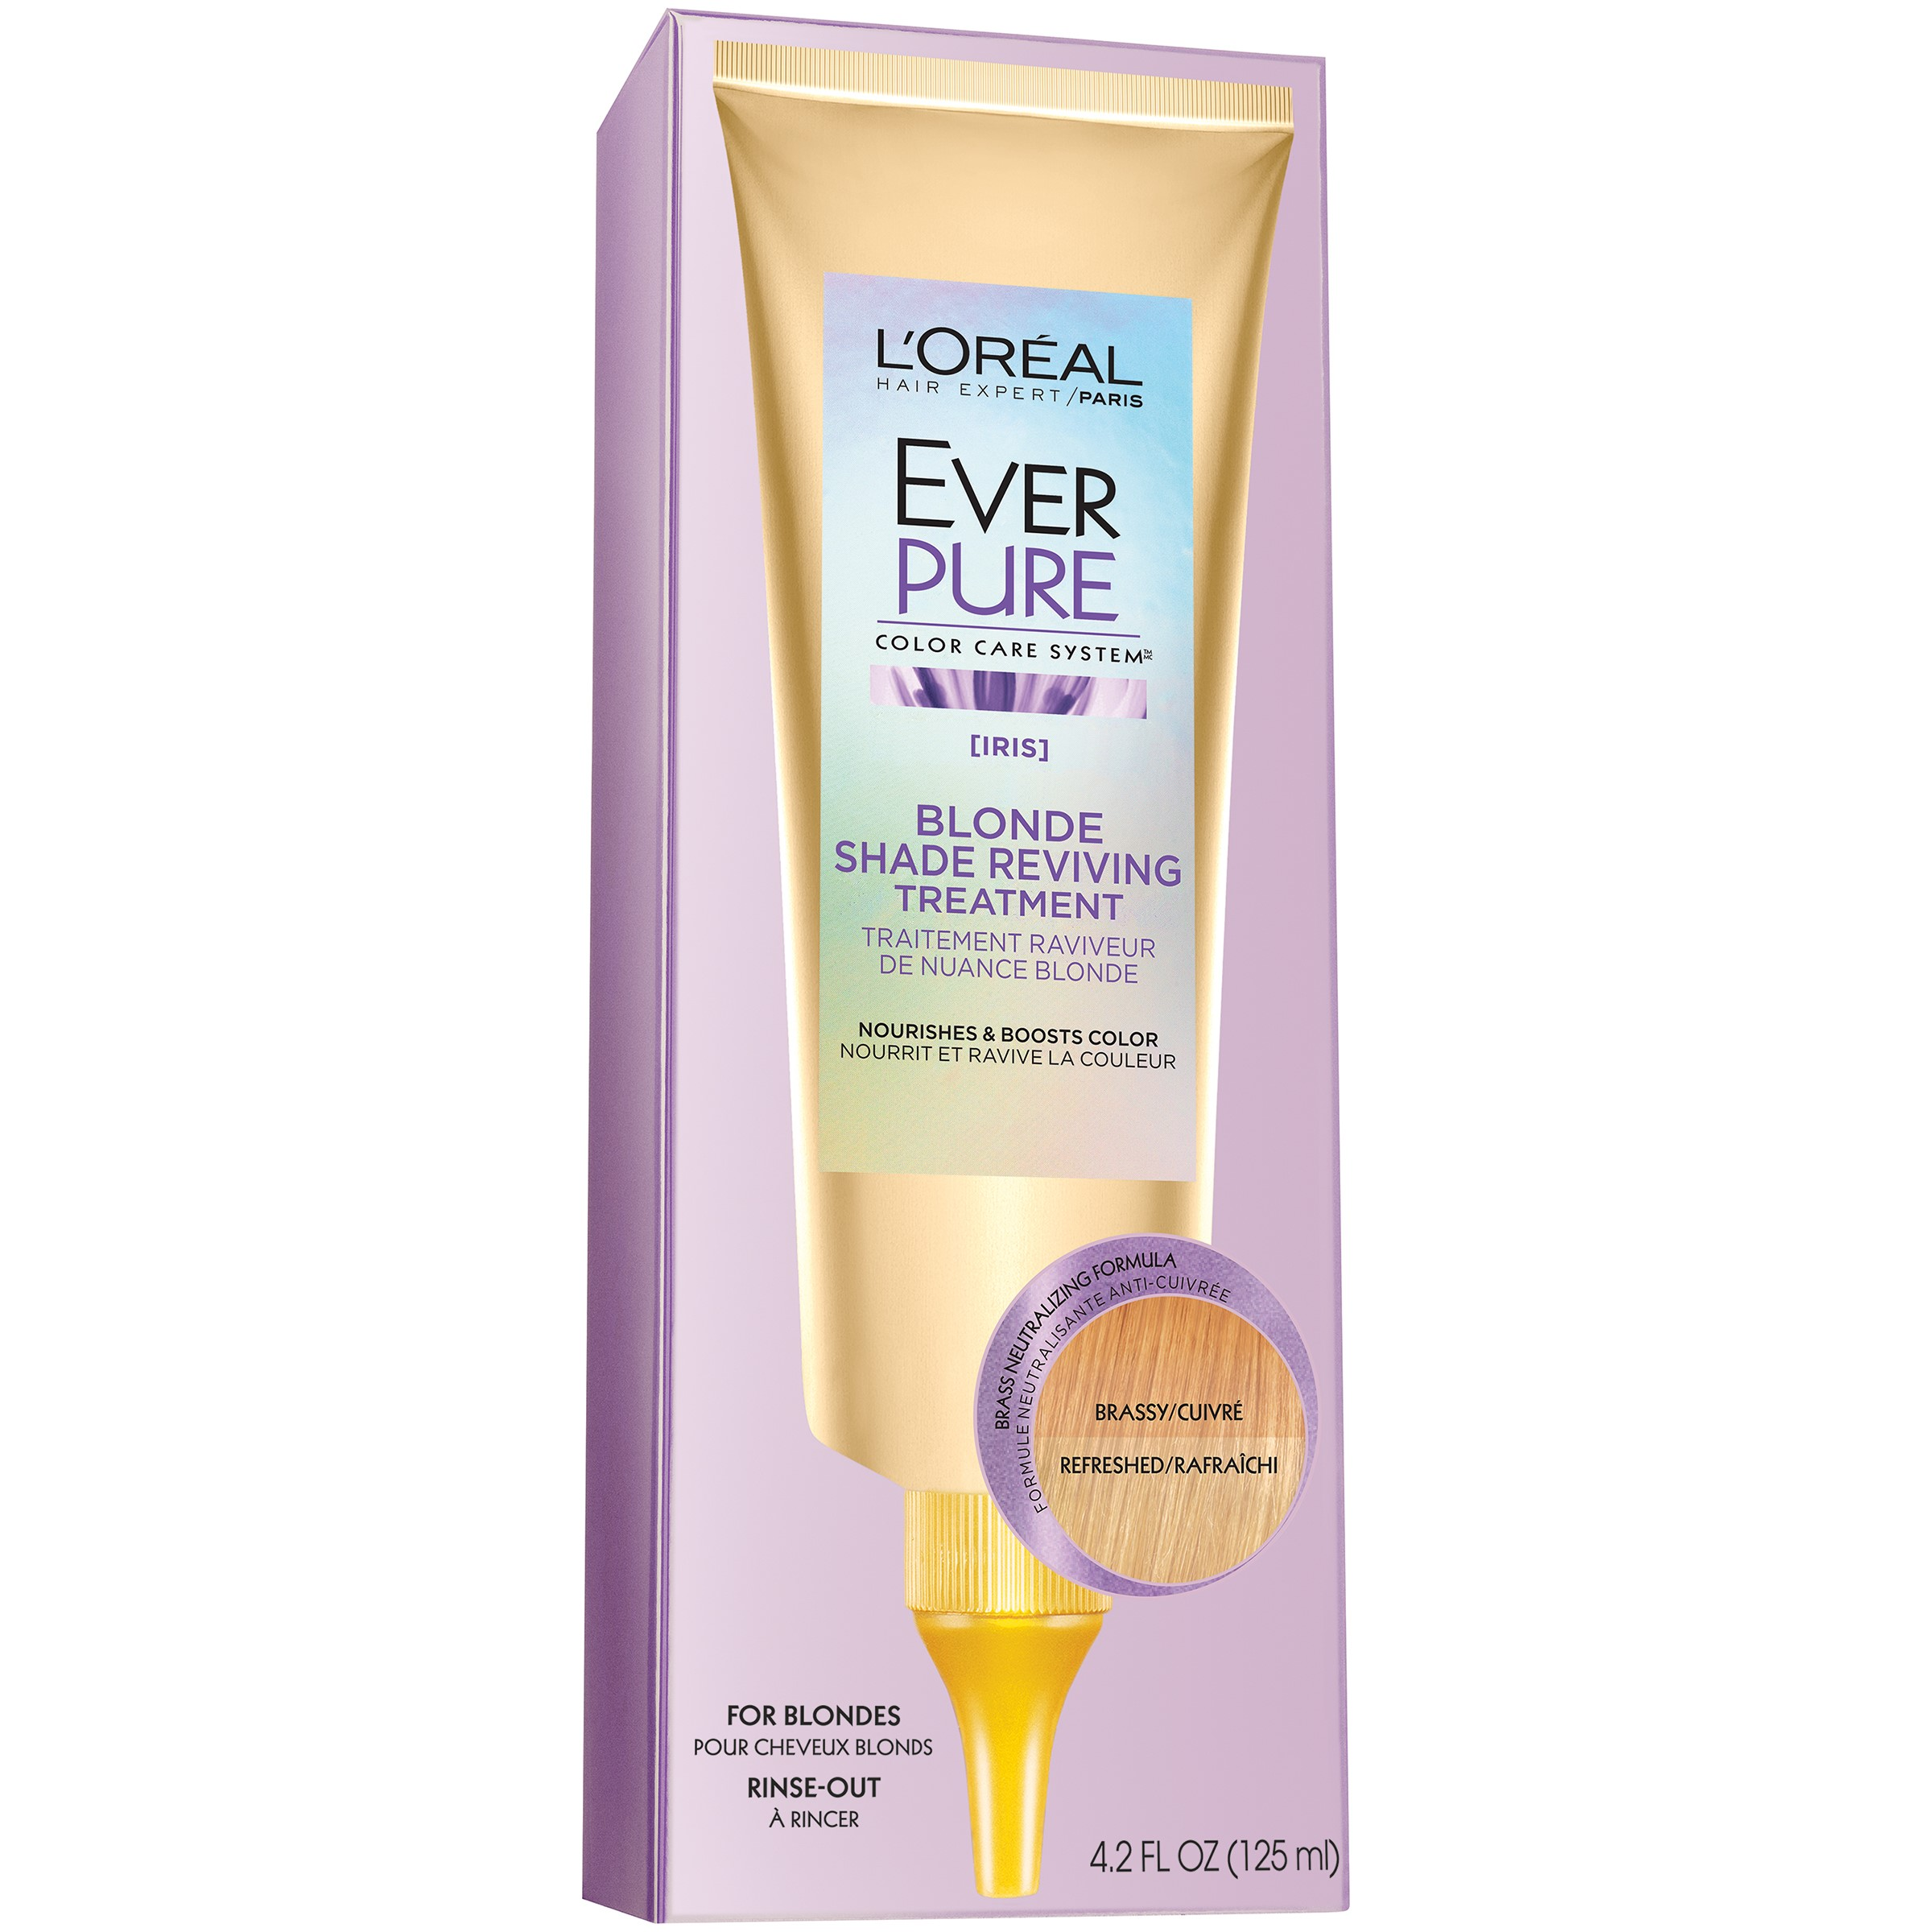 L'Oreal Paris EverPure Blonde Shade Reviving Treatment, 4.2 Fl Oz